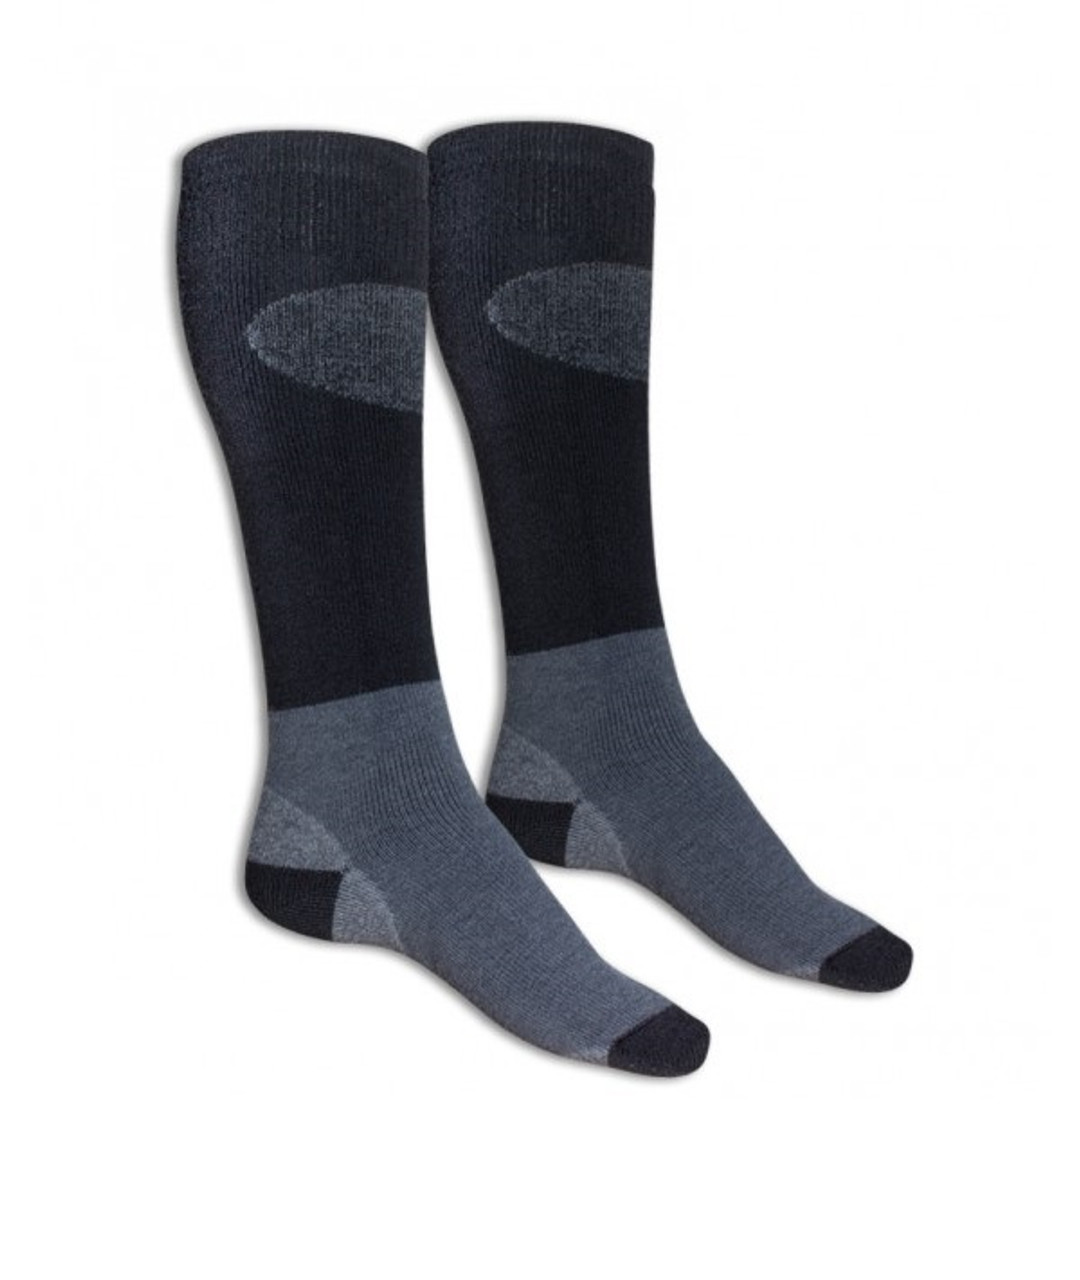 Falke Ski Socks Black Grey @https://www.mountainmailorder.co.za/